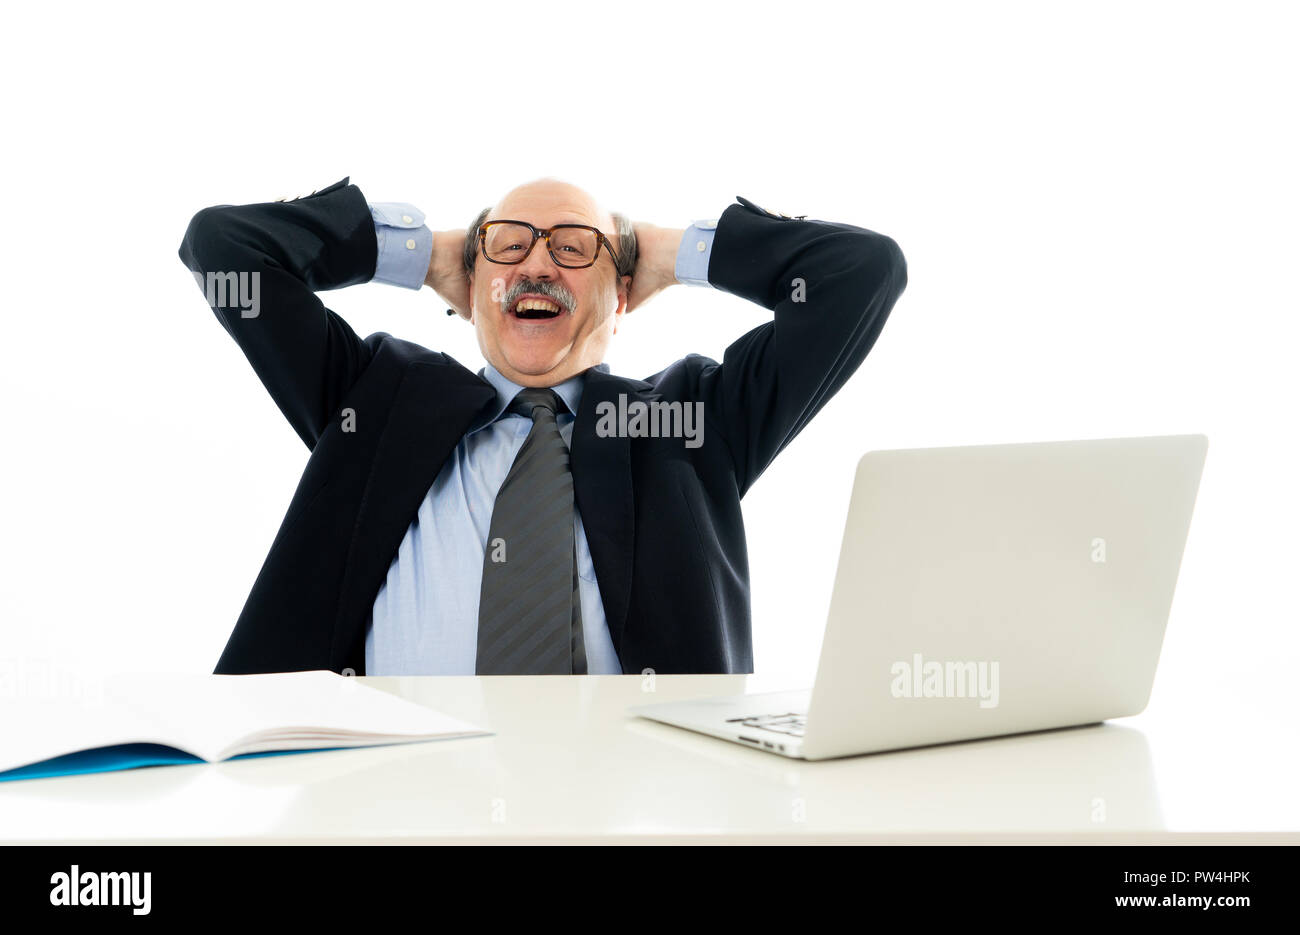 Corporate portrait of happy senior business man confident and satisfied working on computer laptop office desk in Career Success job Satisfaction isol - Stock Image